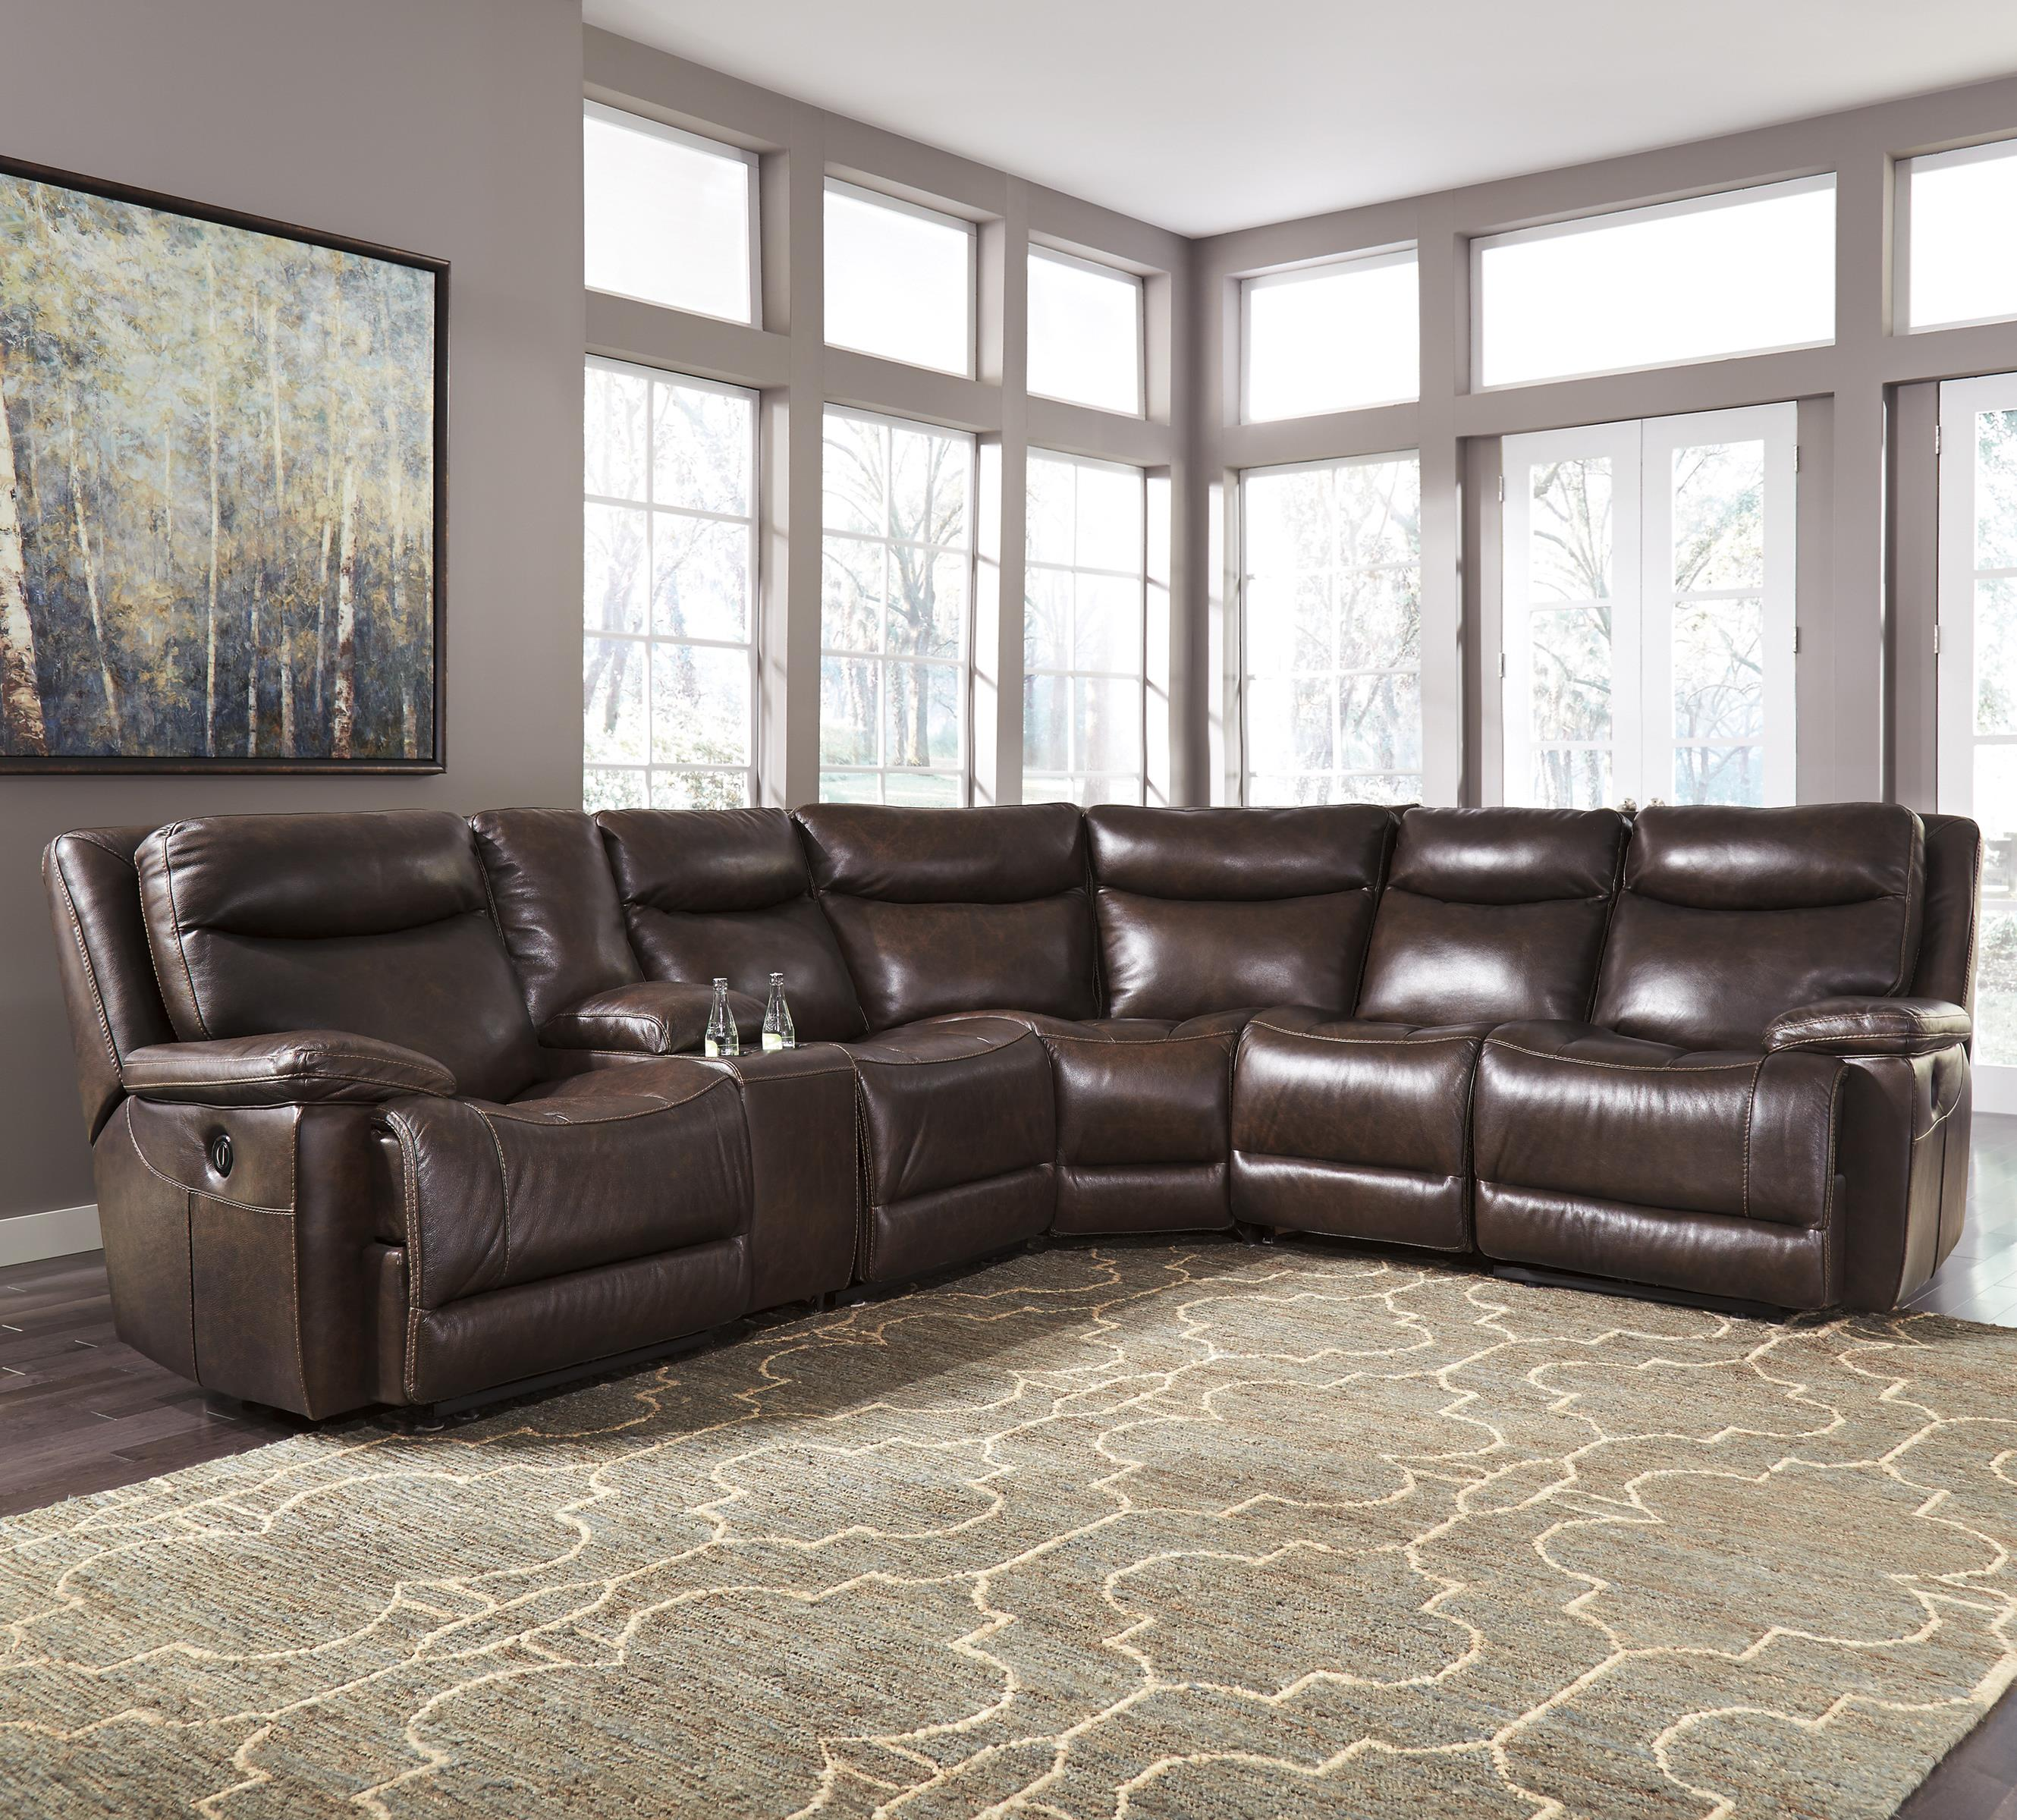 Trendz Bradley Power Reclining Sectional With Console   Item Number:  U7500158+57+19